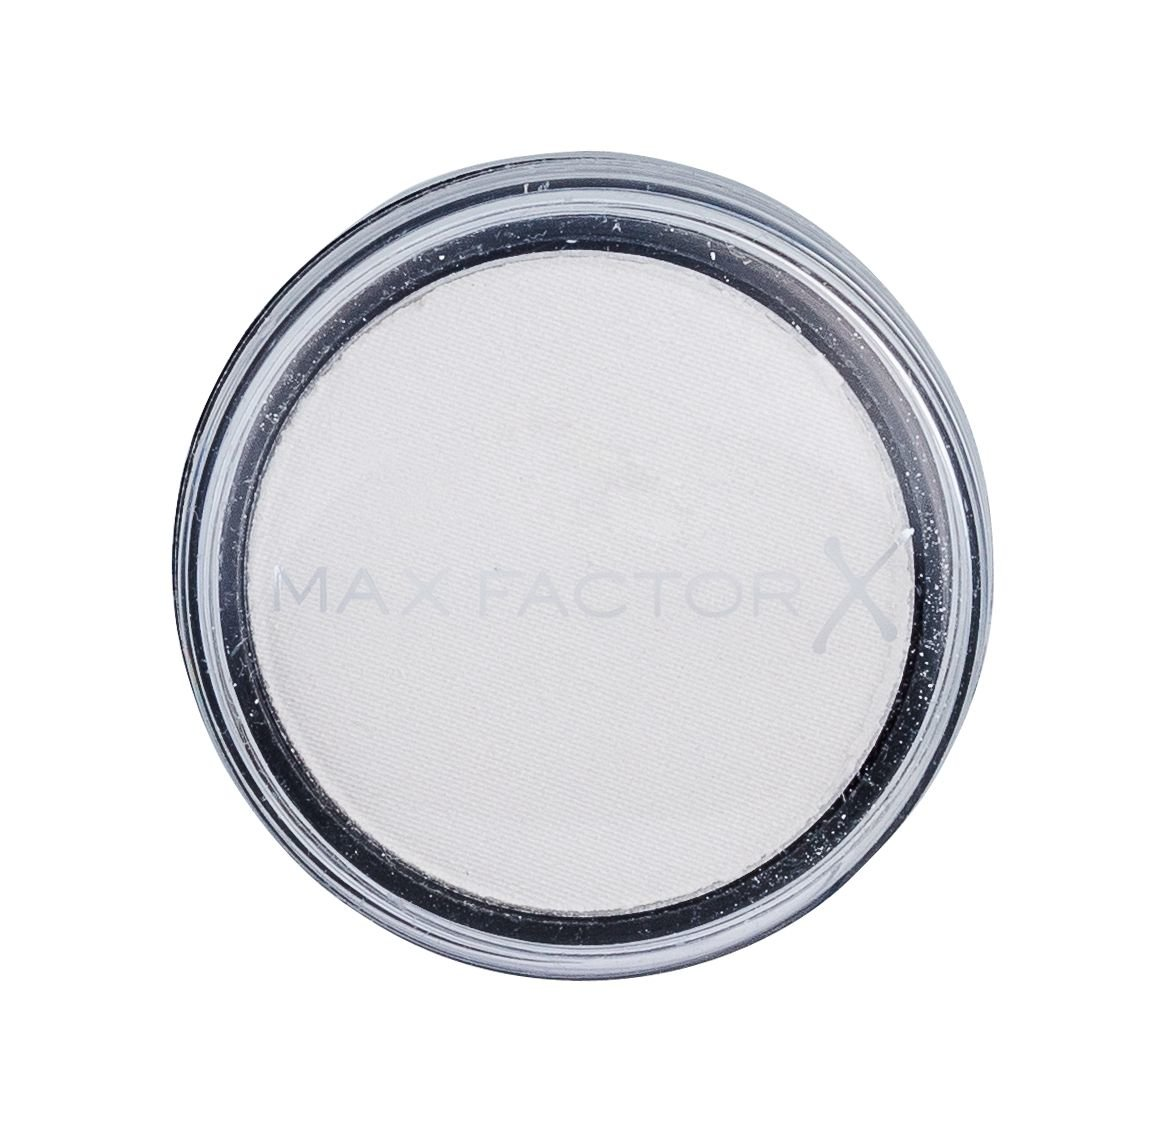 Max Factor Wild Shadow Pot Eye Shadow 4ml 116 Wicked White